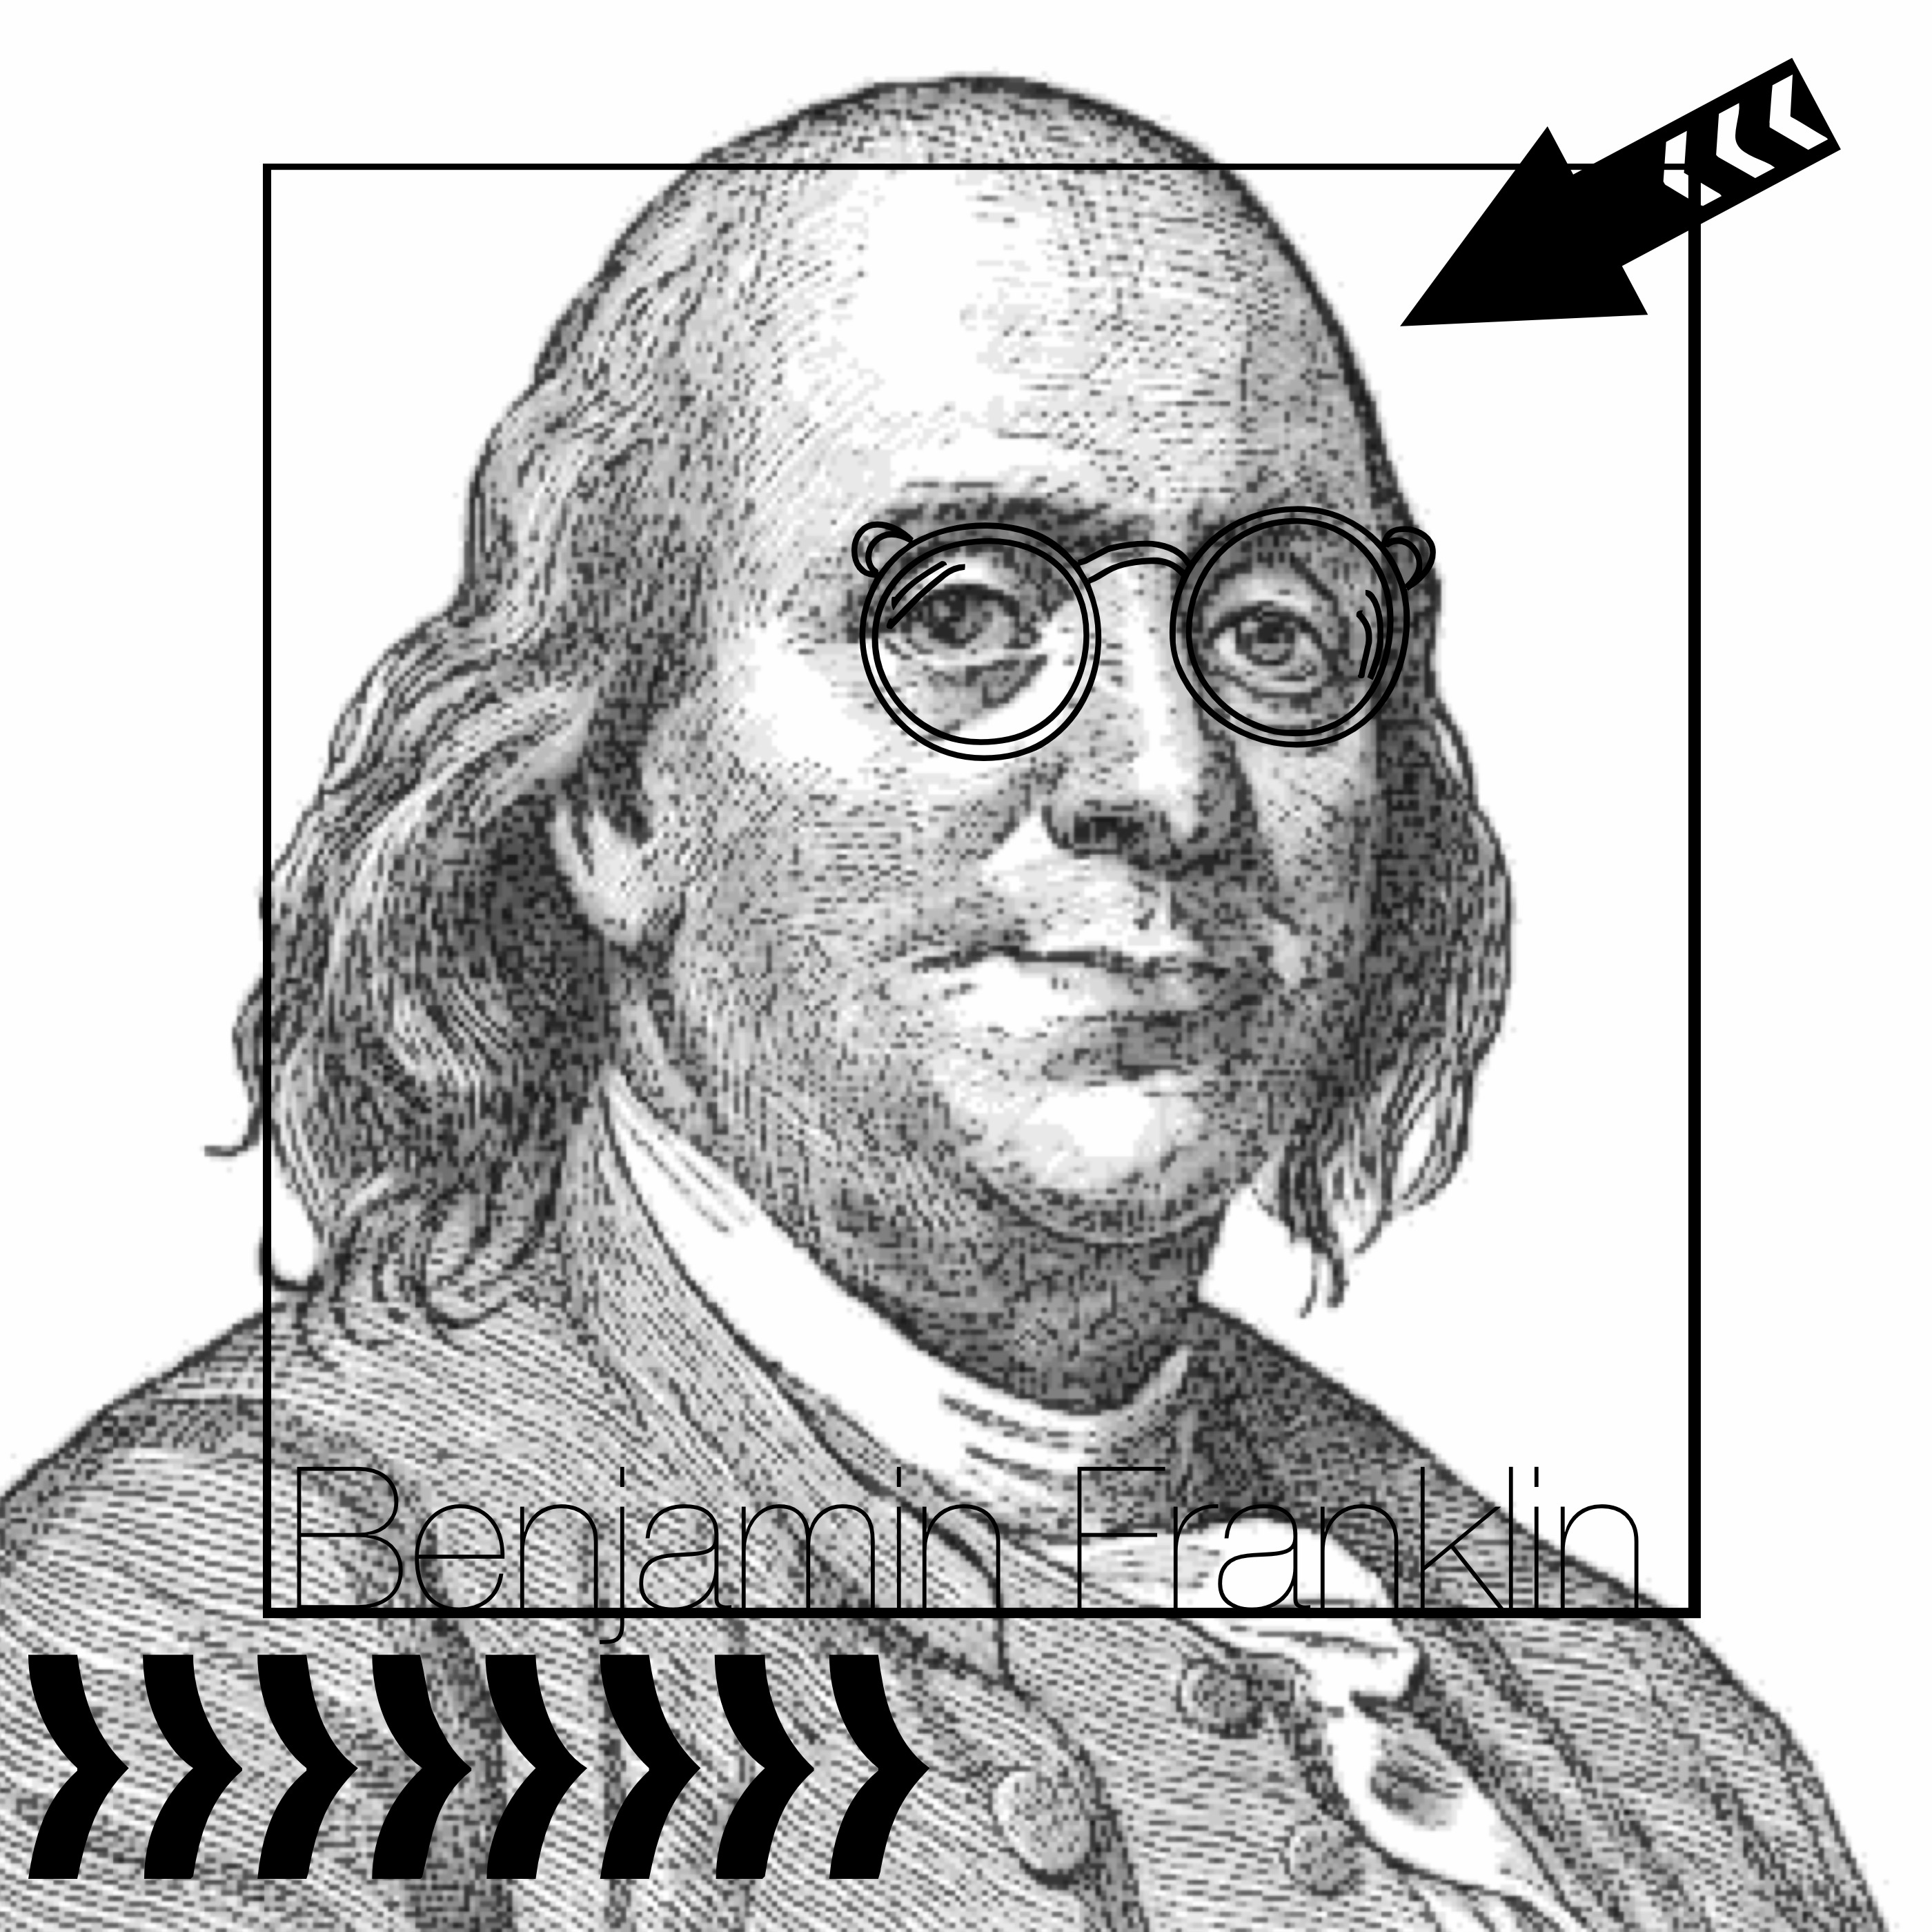 BenniFranklin